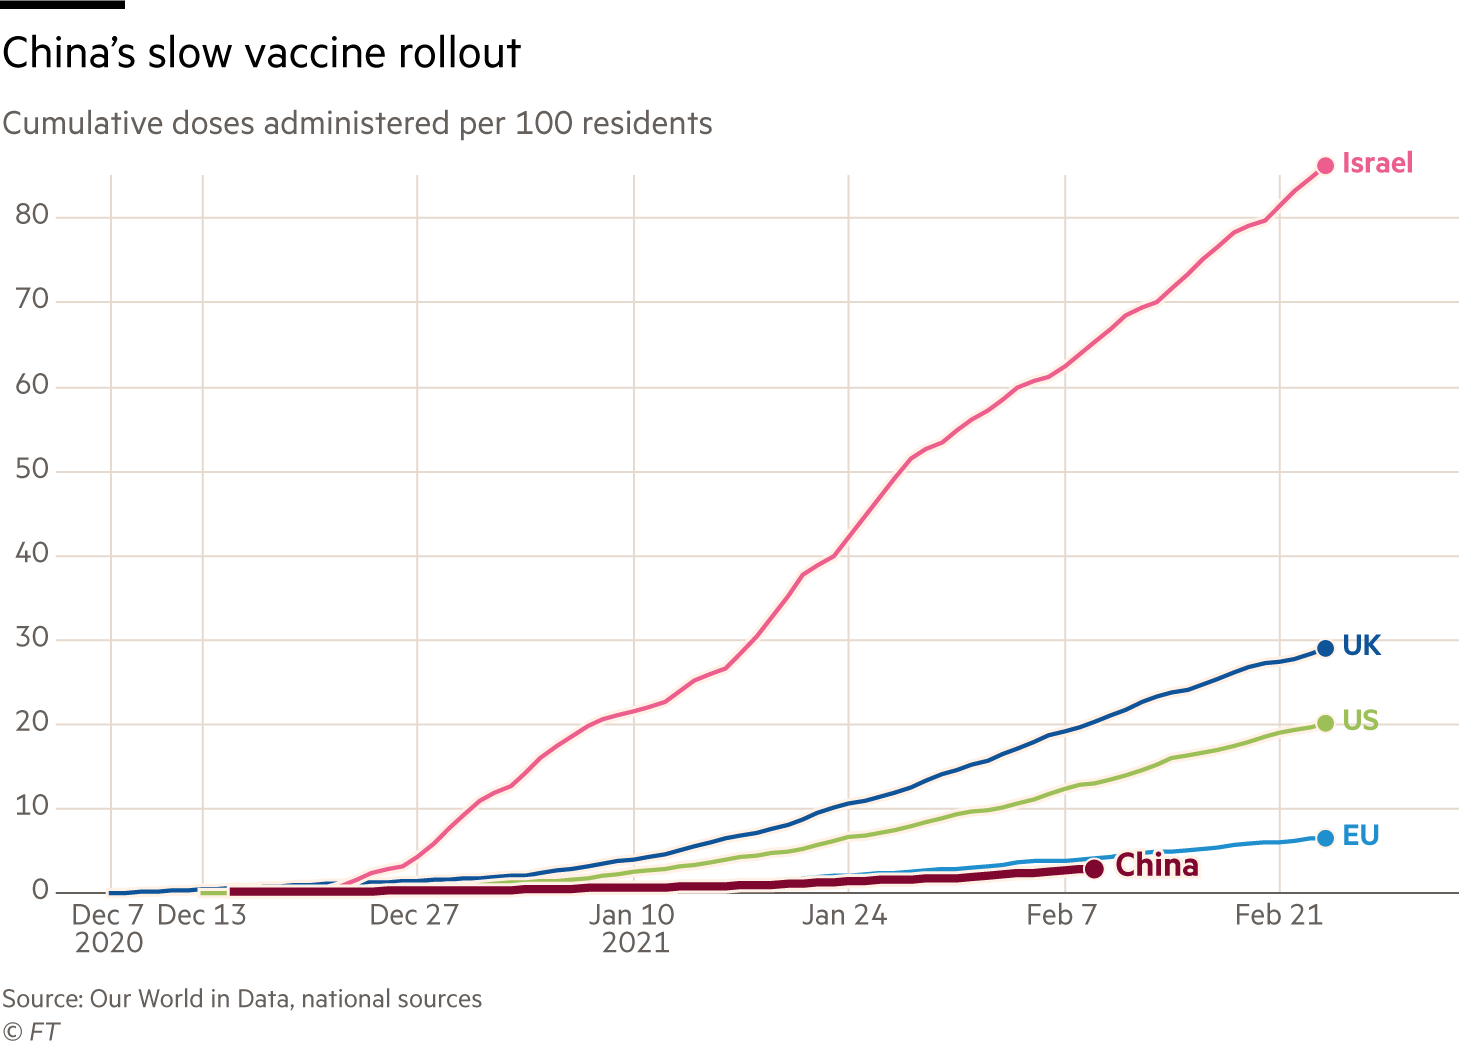 China's slow vaccine rollout. Chart showing cumulative doses administered per 100 residents. Israel leads the world with 86 doses per 100 people as of Feb 24. China has only managed 2.9 doses per 100 people as of Feb 9